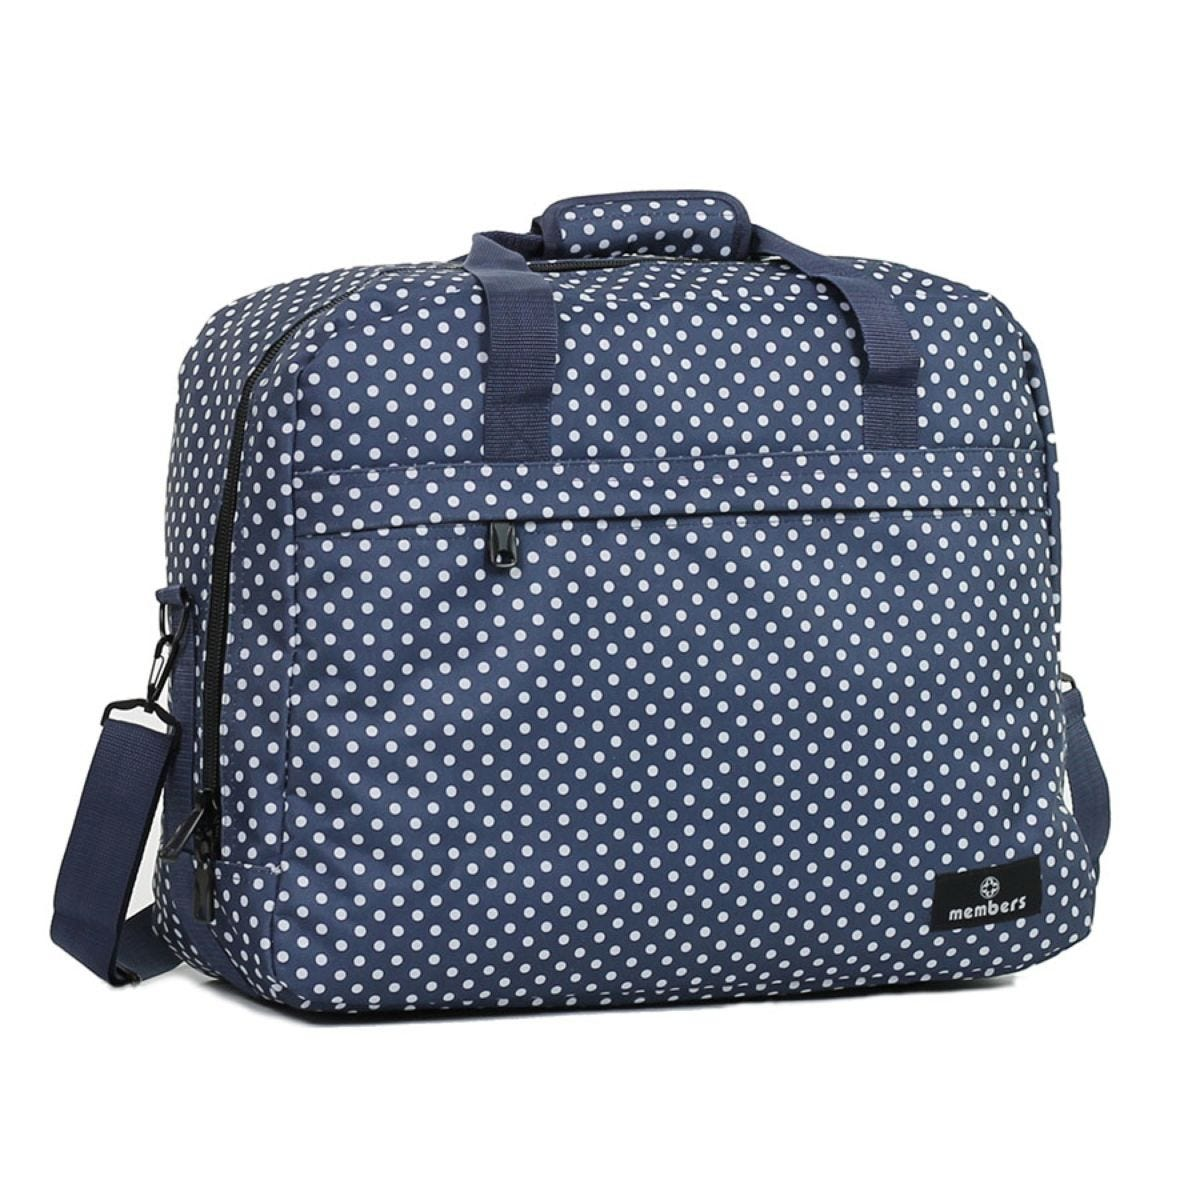 Members by Rock Luggage Essential Carry-On Travel Bag – Navy Polka Dots